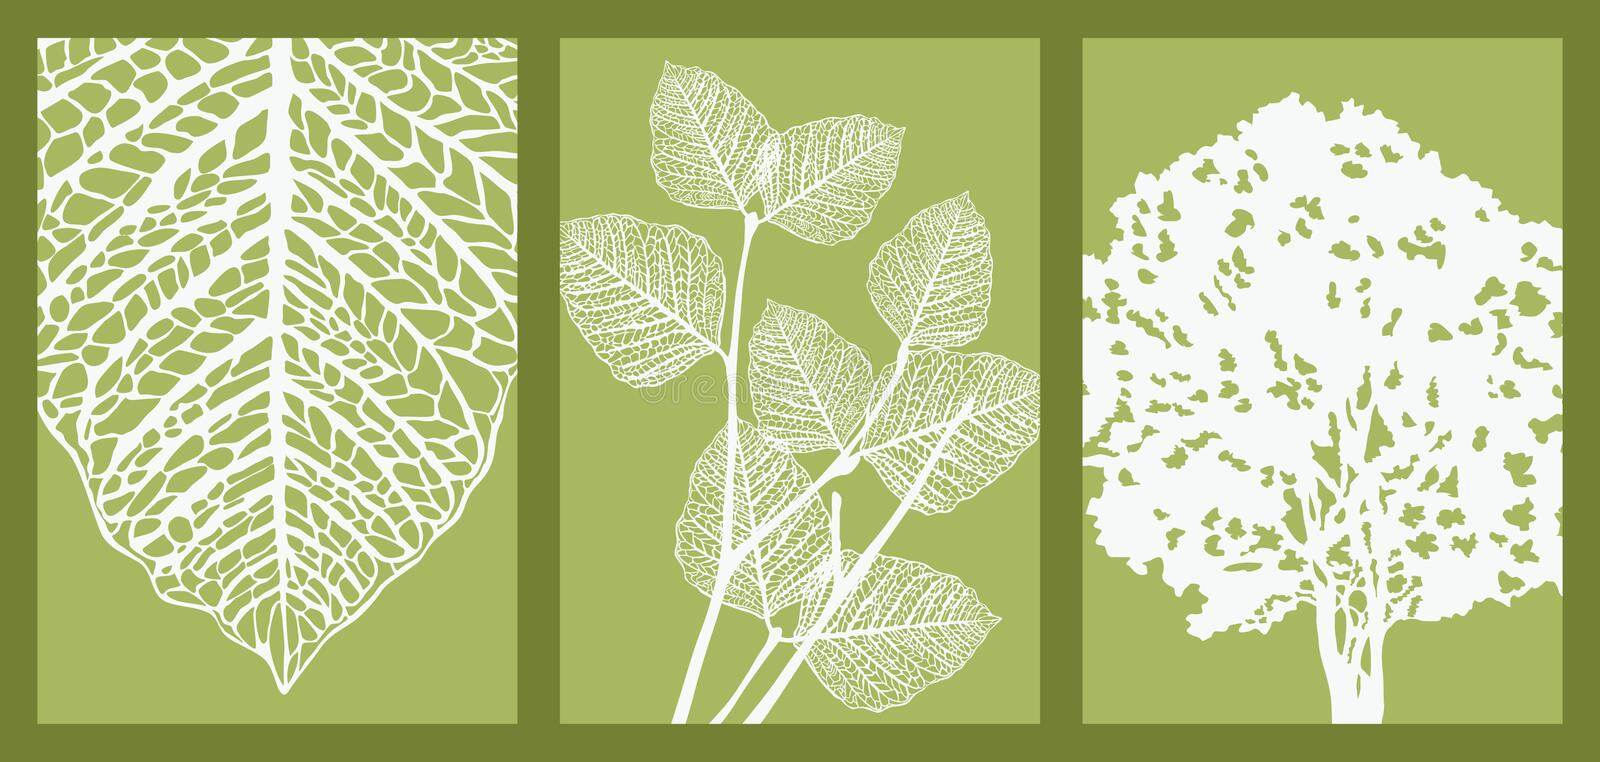 Leaf, Branch and Tree royalty free illustration